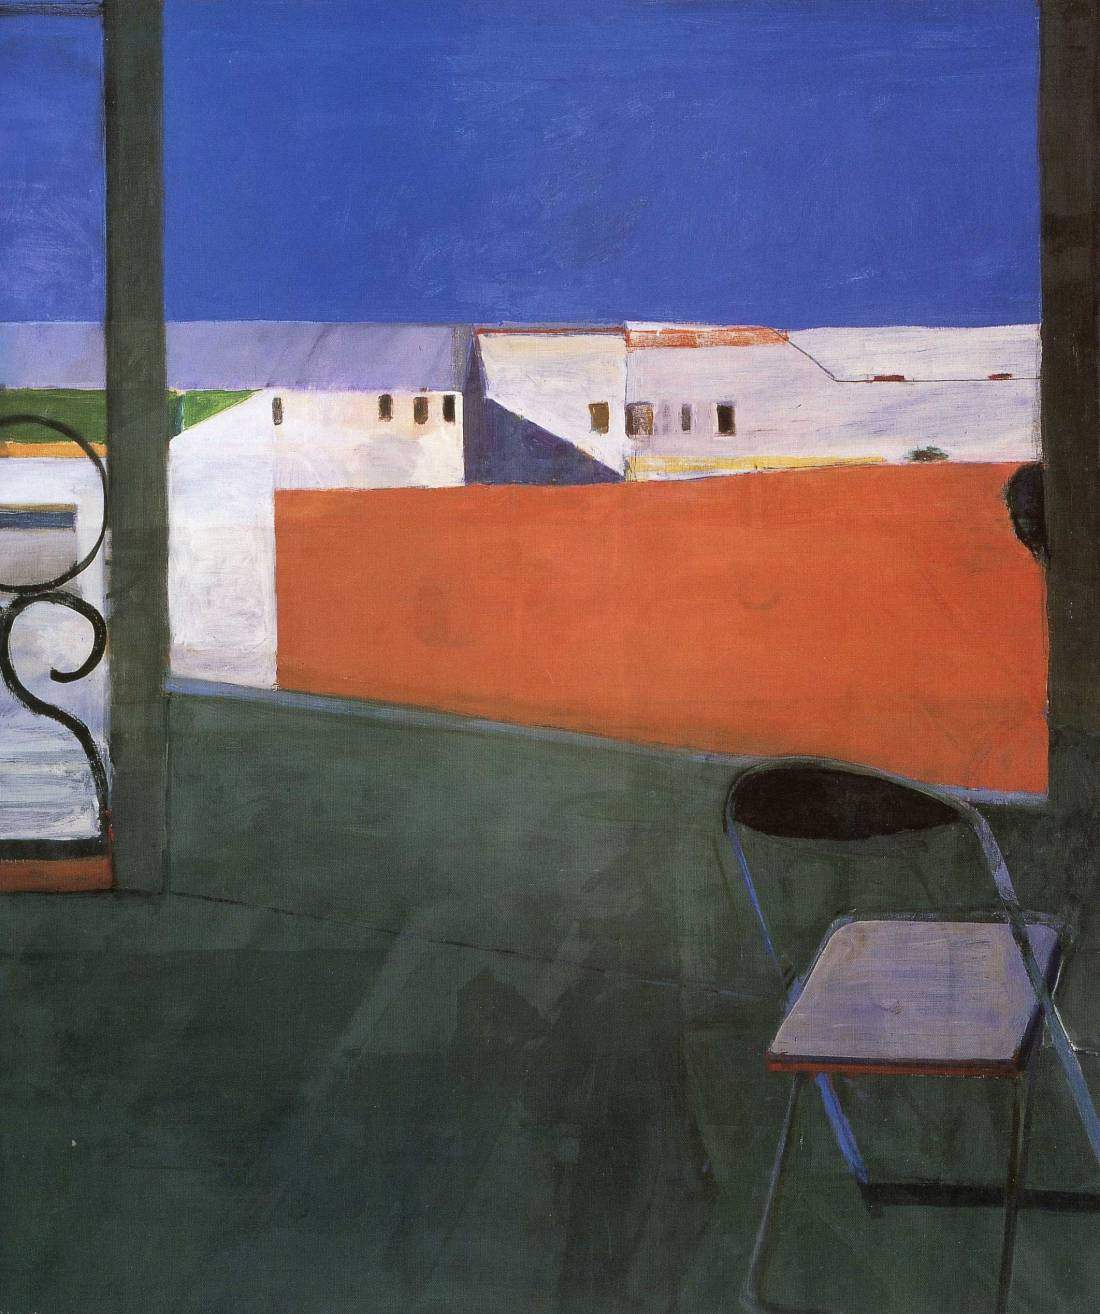 Richard Diebenkorn, Window, 1967. Collection of the Cantor Arts Center, Stanford University.